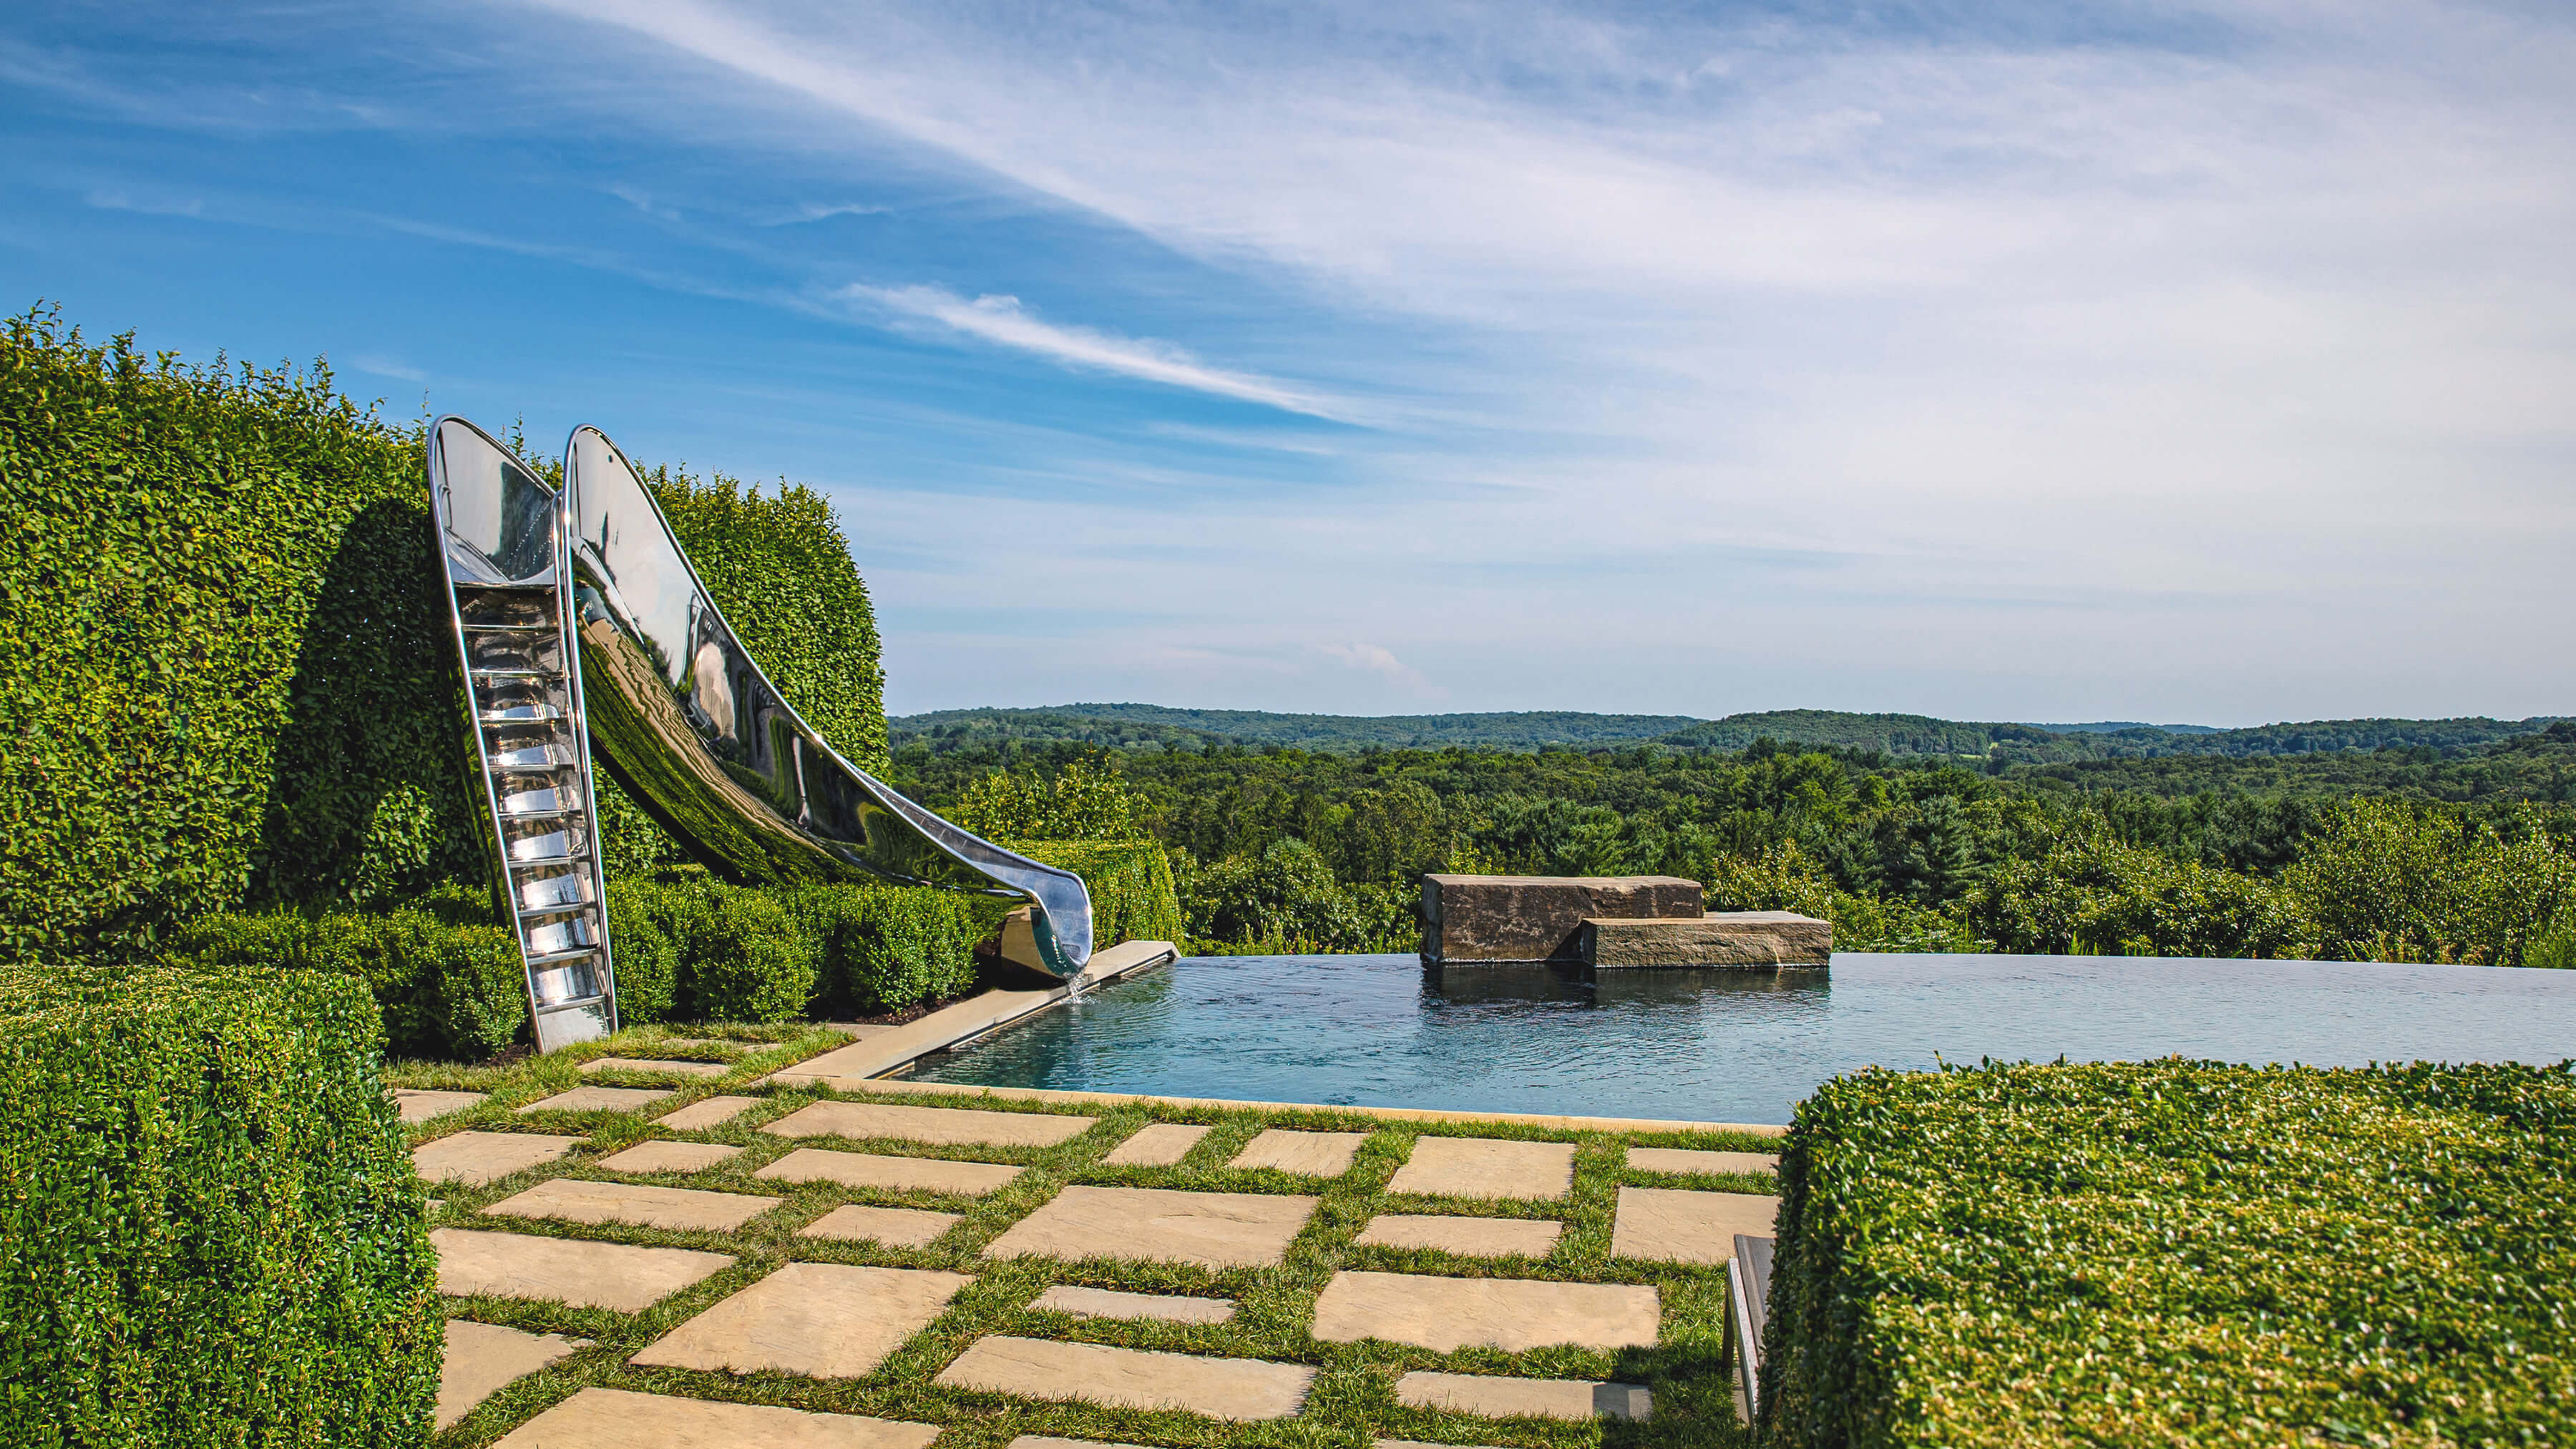 Luxury water slide next to beautiful infinity pool in up state New York.